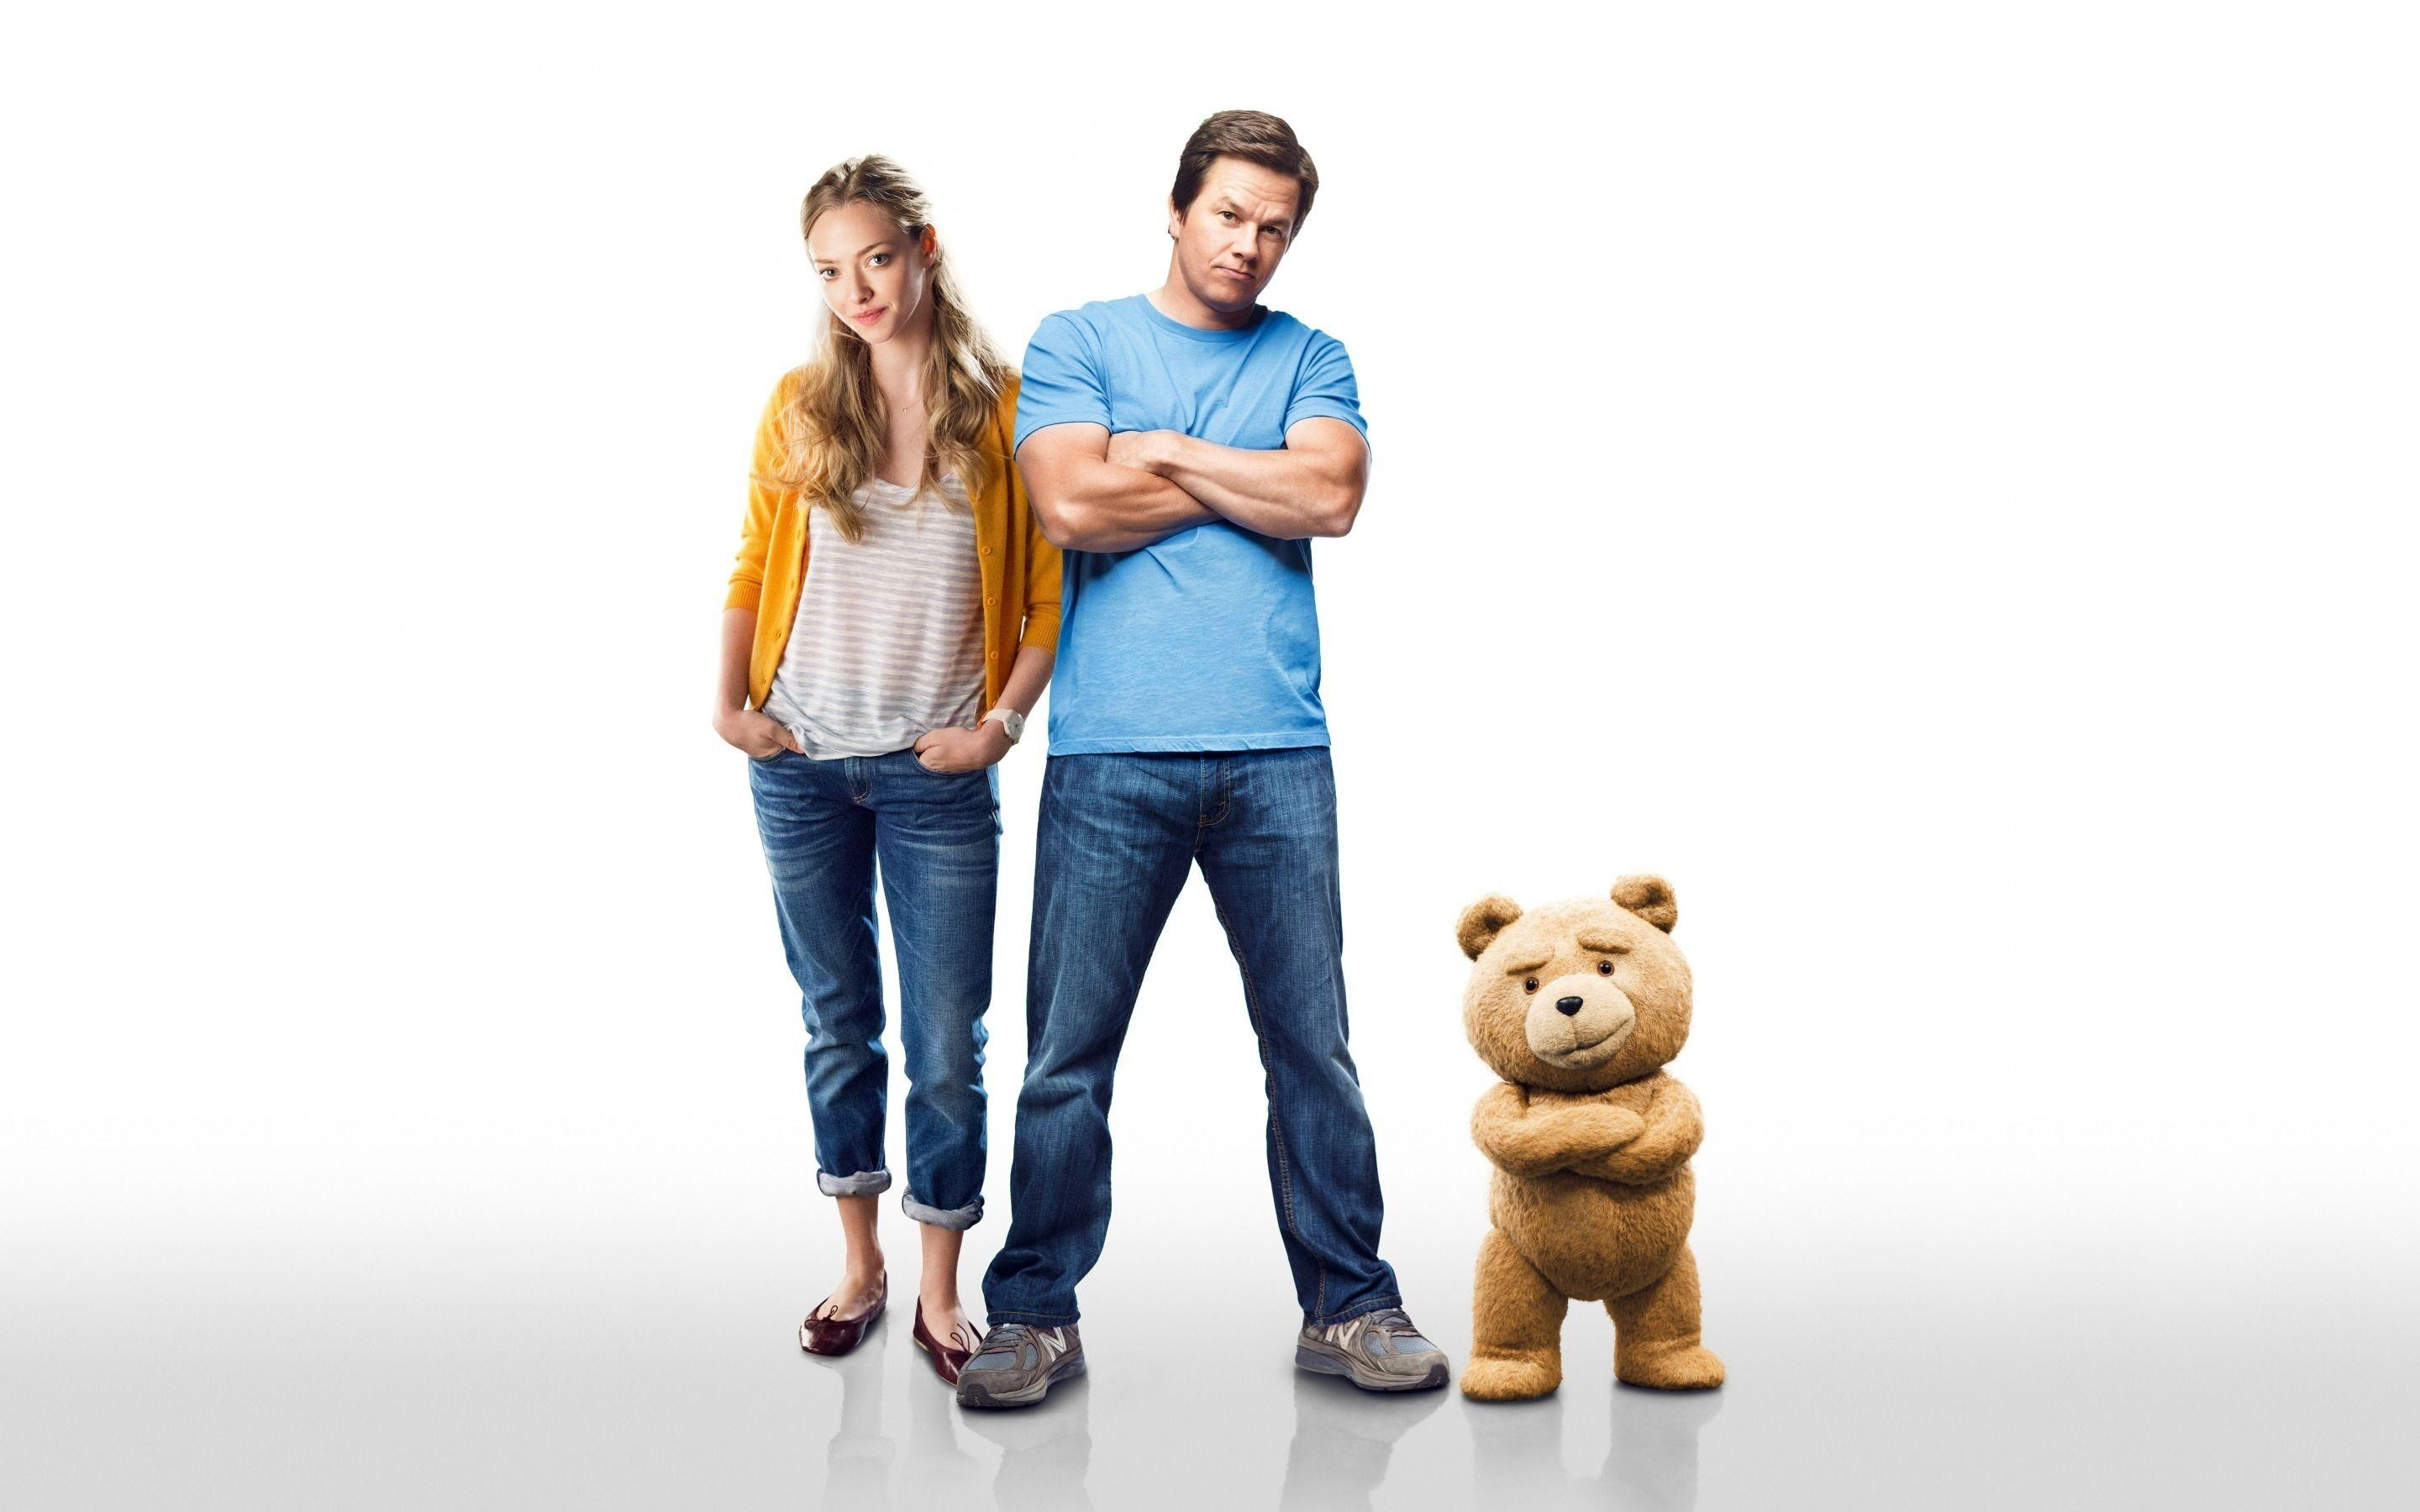 ted 2 movie download in tamil